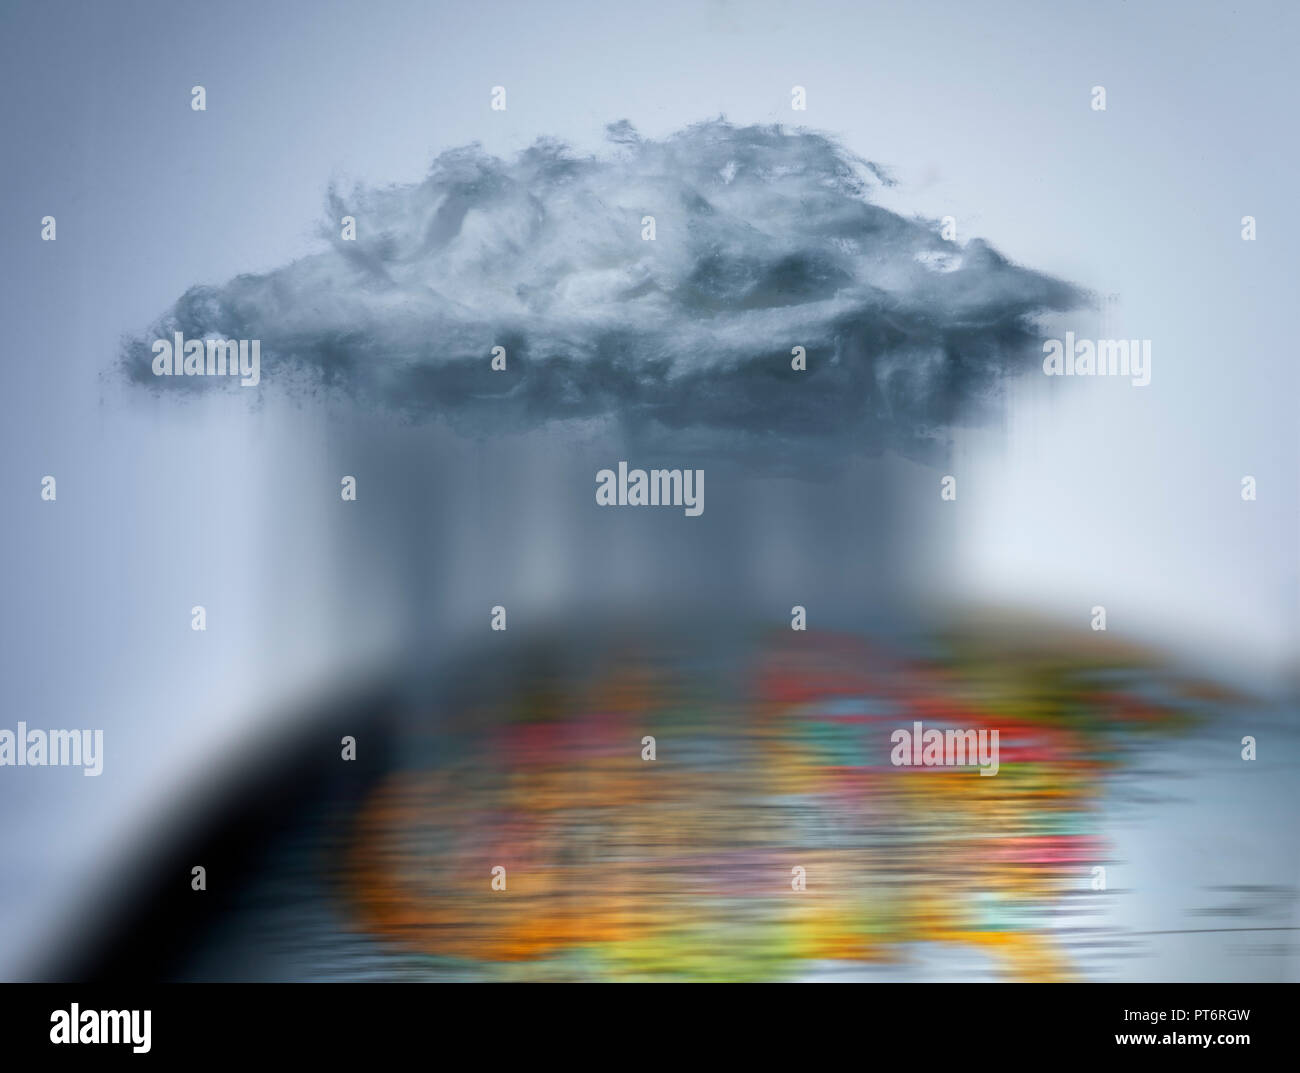 Concept A Rain Cloud Pouring on a Globe, World Weather - Stock Image